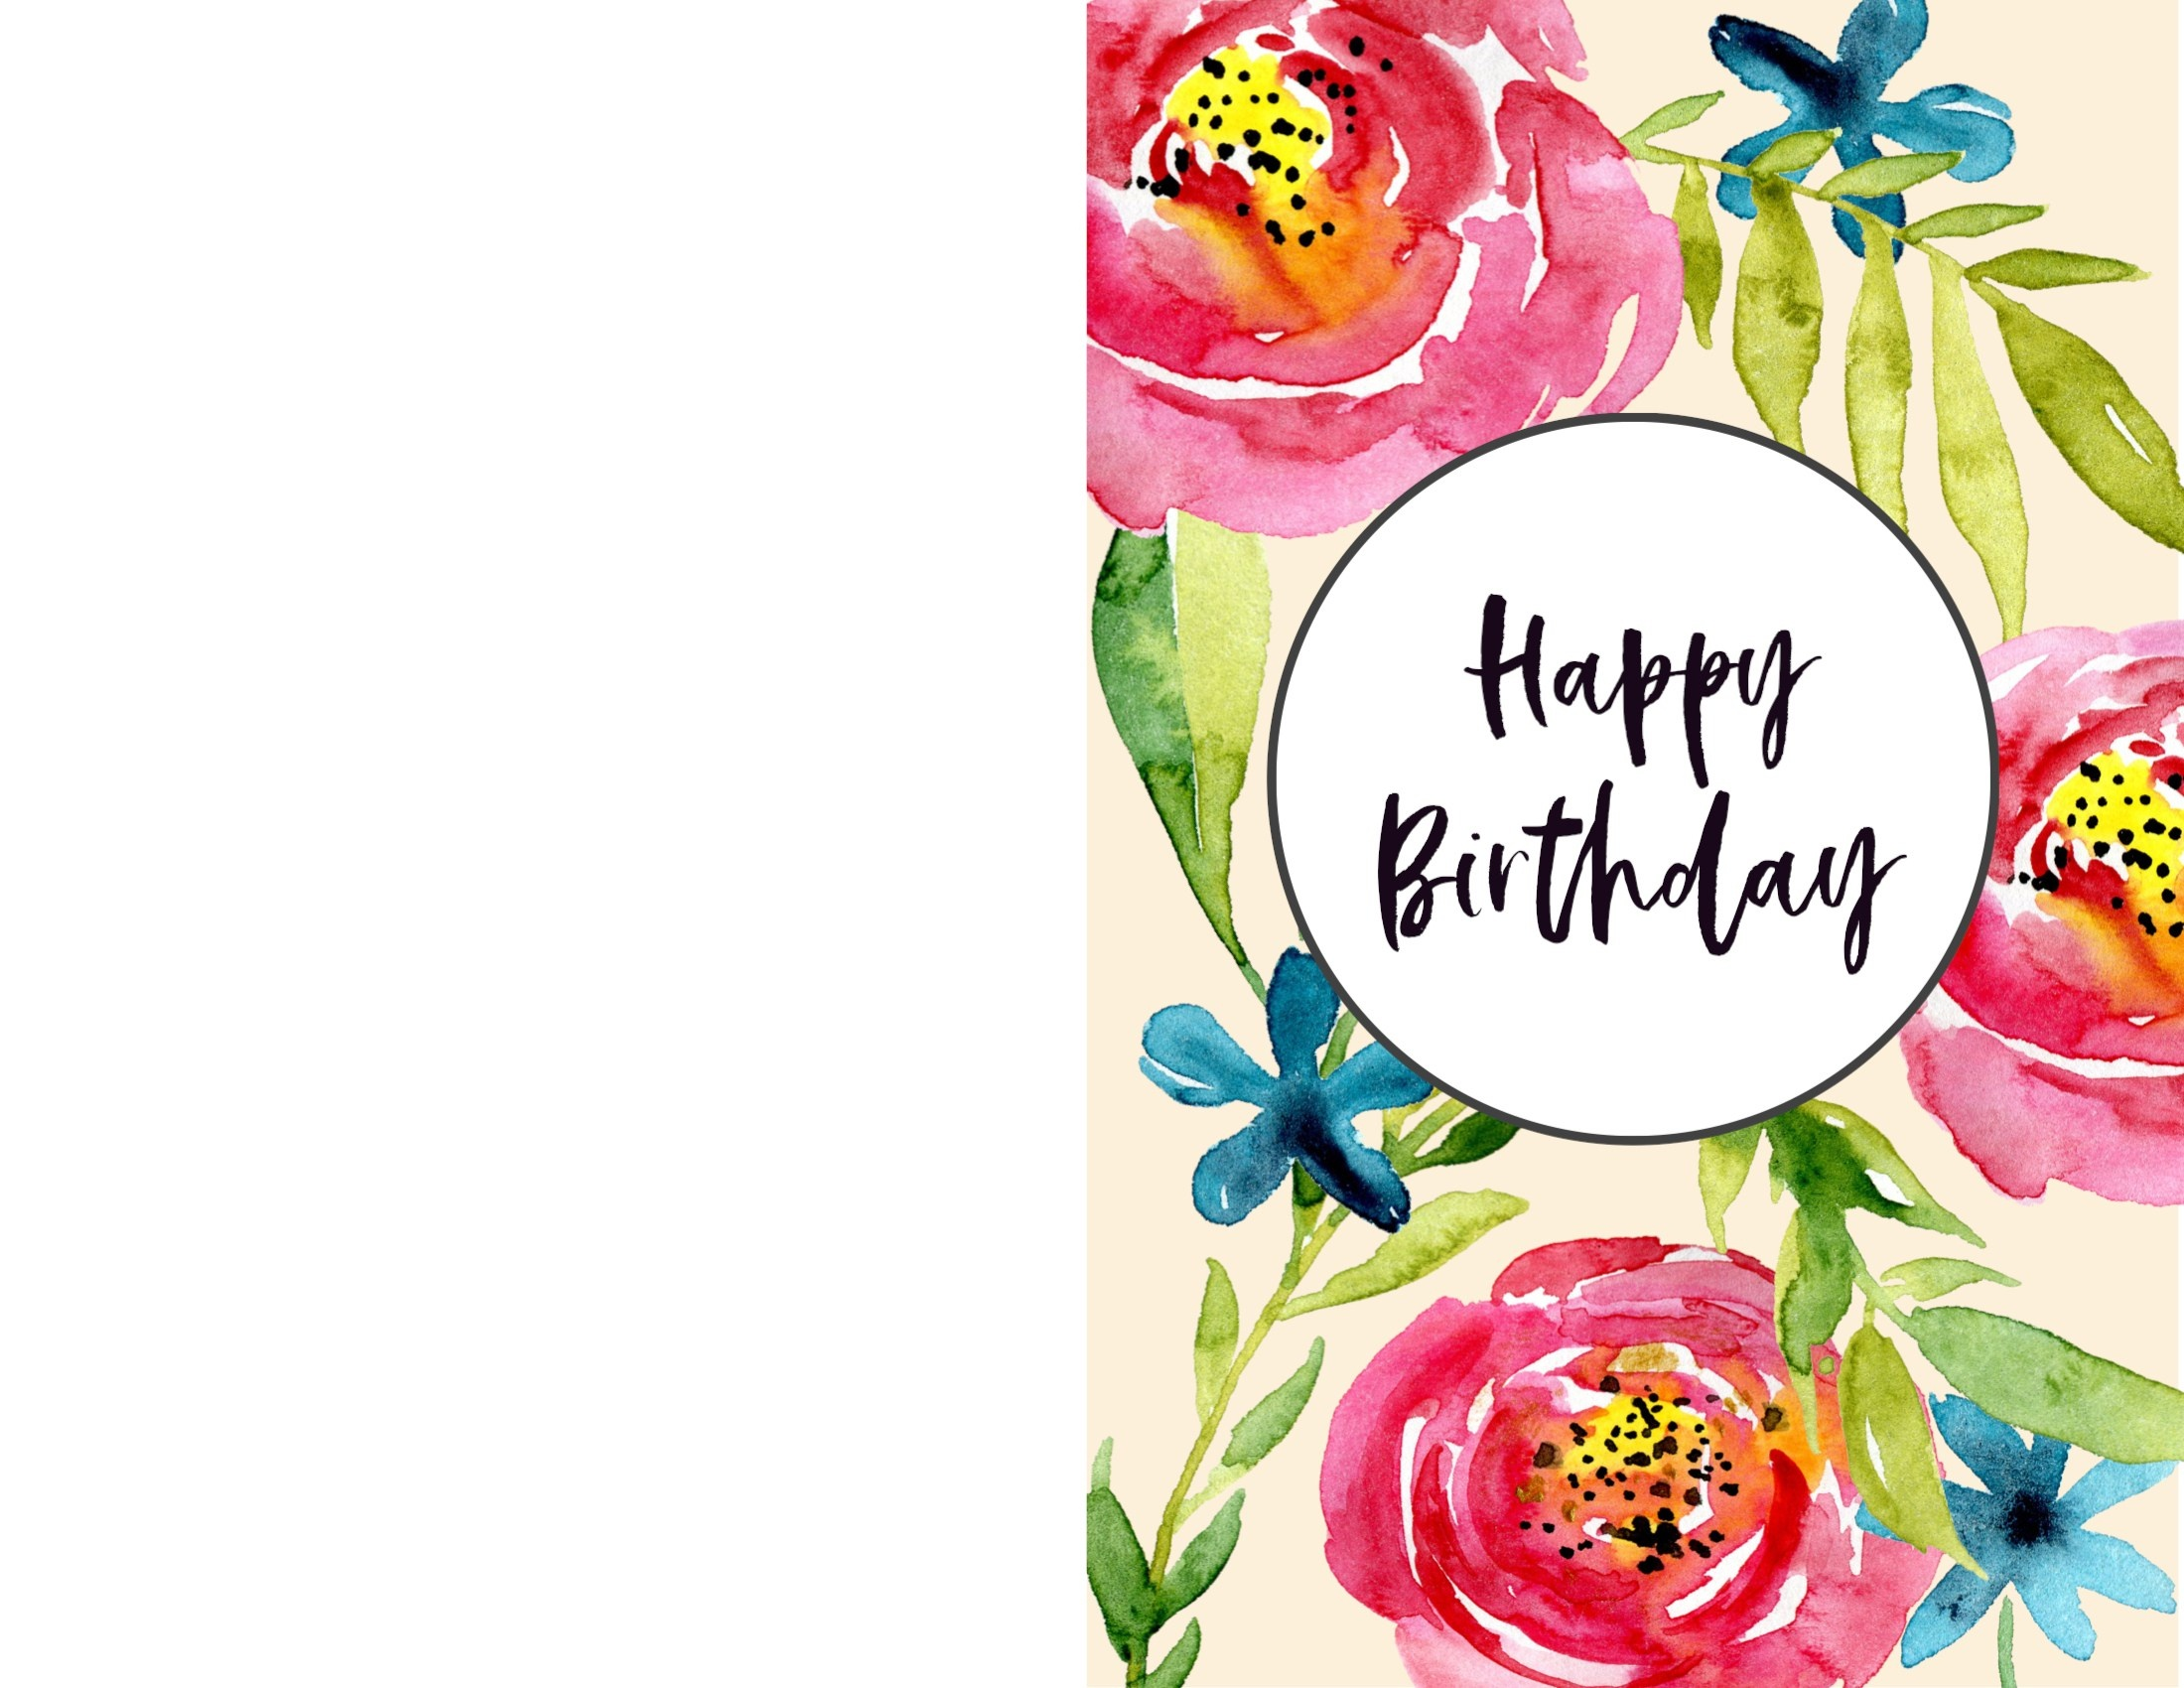 Free Printable Birthday Cards - Paper Trail Design - Happy Birthday Free Cards Printable